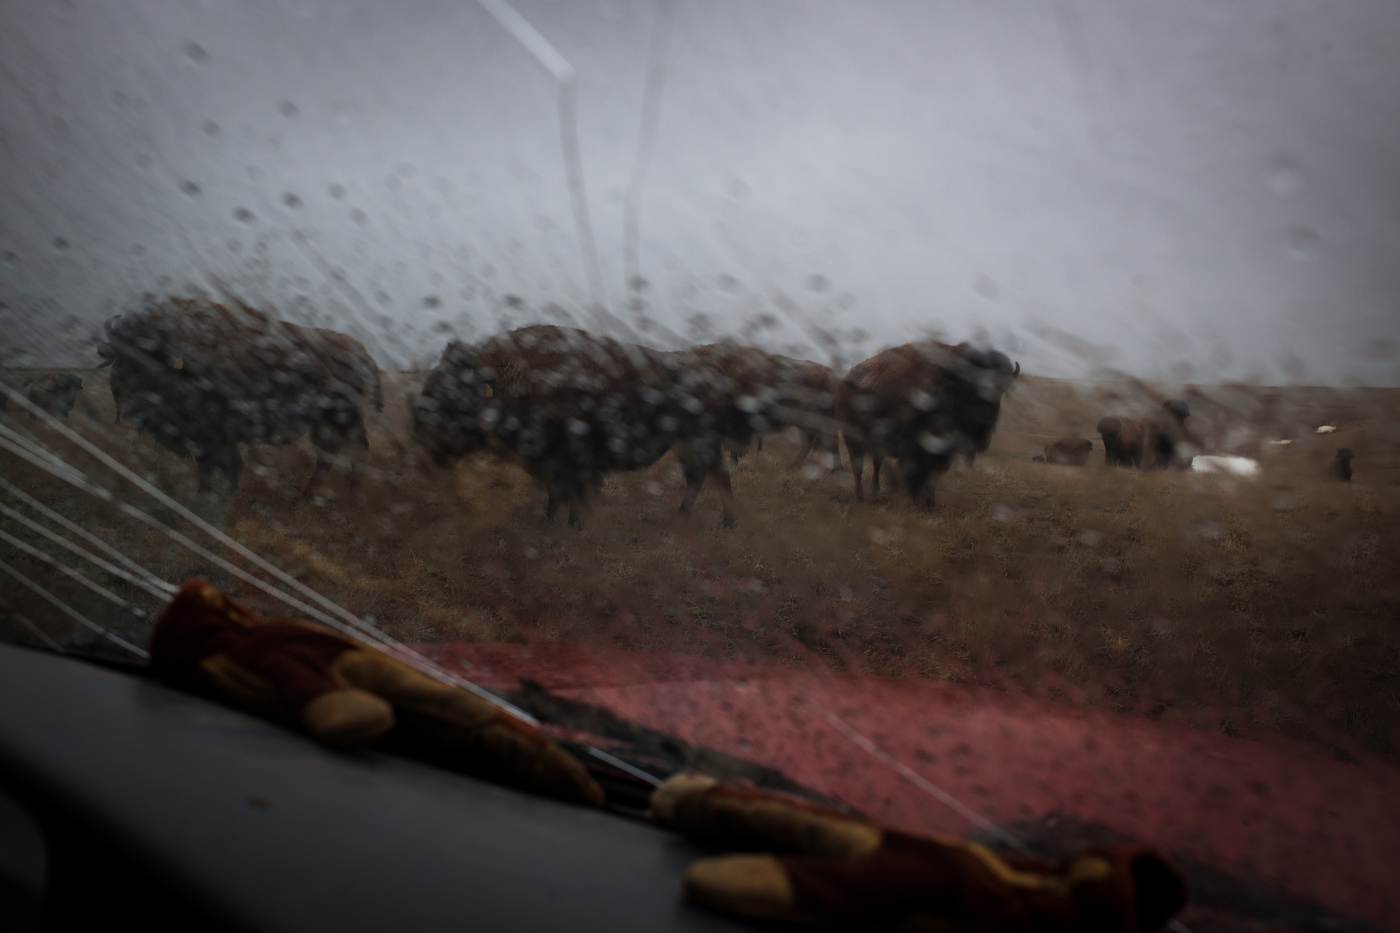 """45º19'04.0""""N, 102º10'43.9""""W. 120 miles from the nearest McDonald's. A small number of America Plains Bison are seen through the cracked windshield of rancher Jamie Hepper's pickup truck in Meadow, SD on April 12, 2018. Hepper is a third-generation bison rancher, starting her own business with the help of her father, following in the footsteps of her grandfather who was one of the first to commercially ranch bison on a large scale, helping to bring the species back from the brink of extinction."""